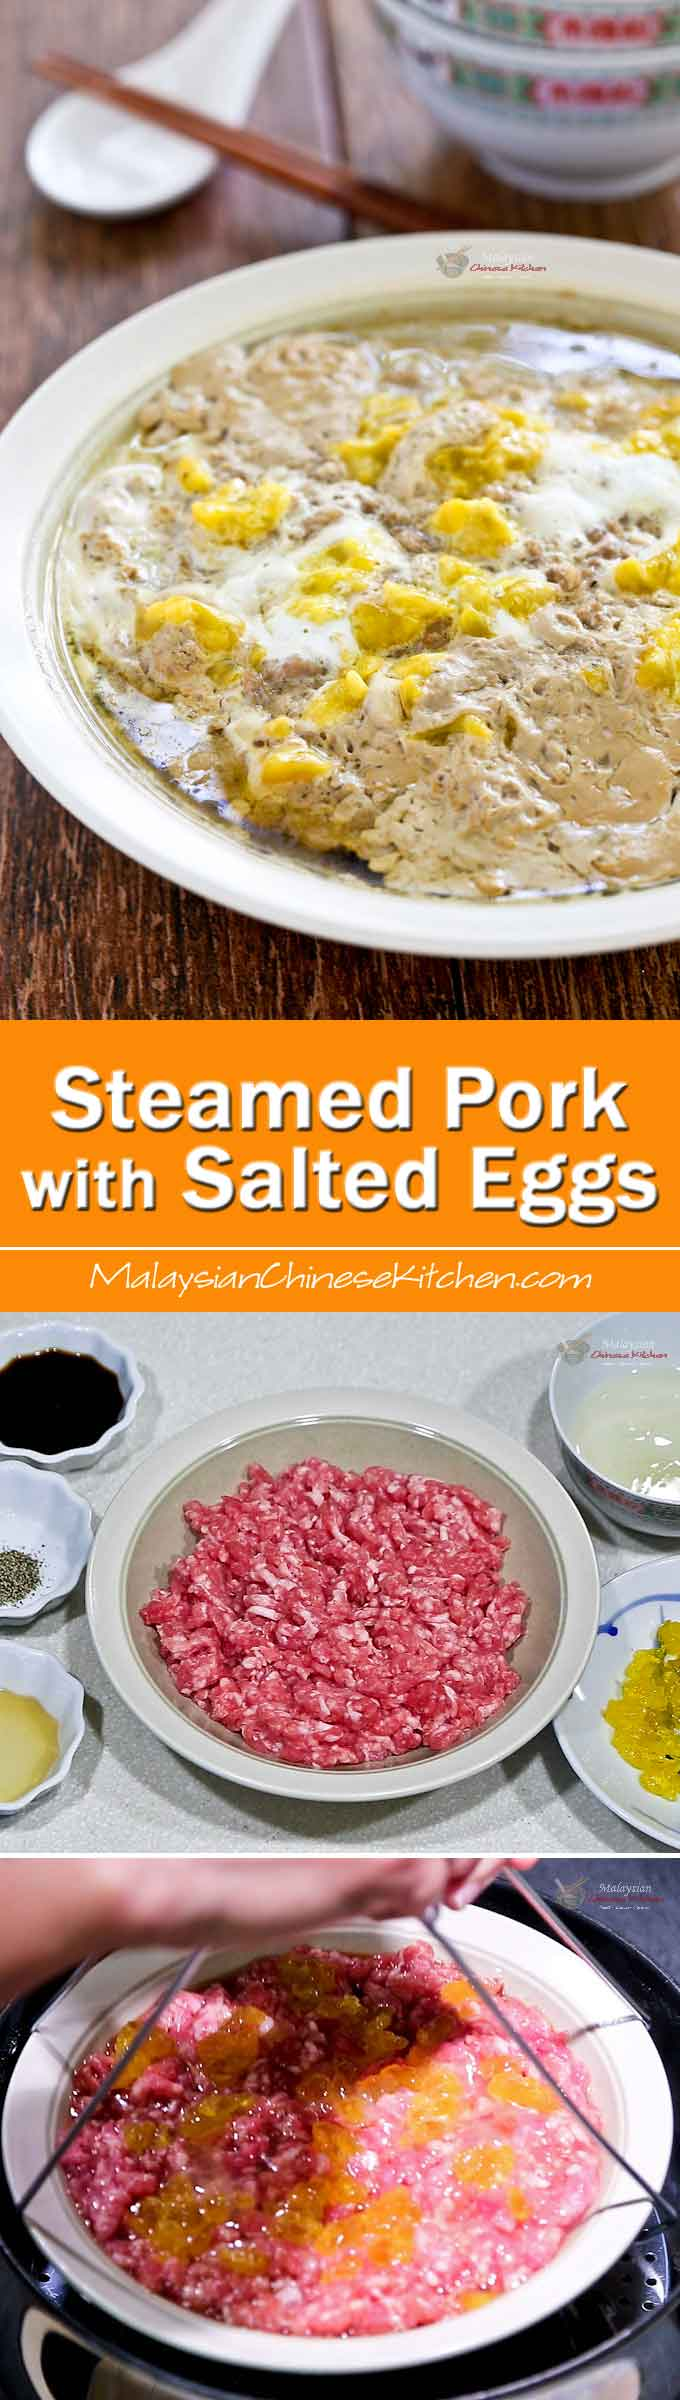 Steamed Pork with Salted Eggs is an easy and tasty dish using just a handful of ingredients. It involves minimum prep work and cleanup is a breeze.| Food • Culture • Stories at MalaysianChineseKitchen.com